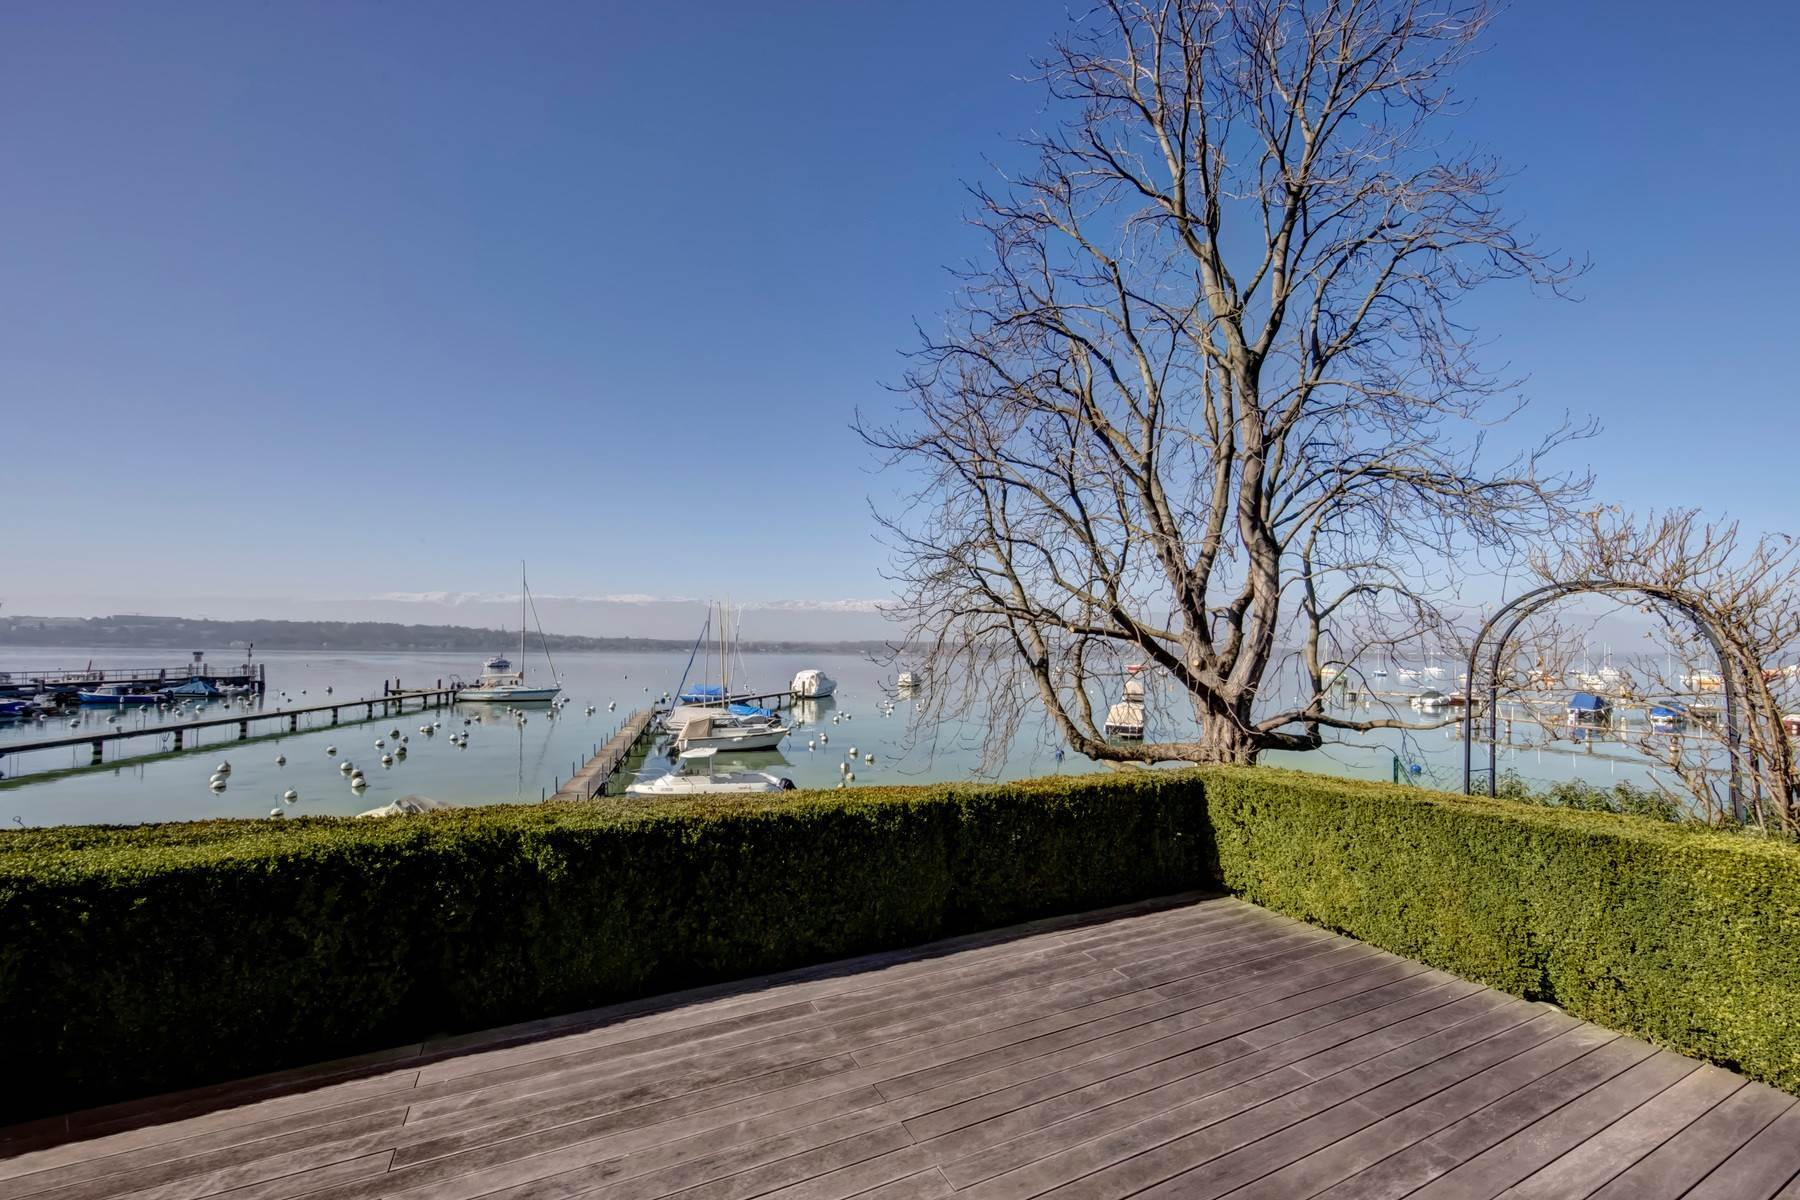 Single Family Homes for Active at Superb waterfront villa with Jet d'Eau view Cologny Cologny, Geneva 1223 Switzerland